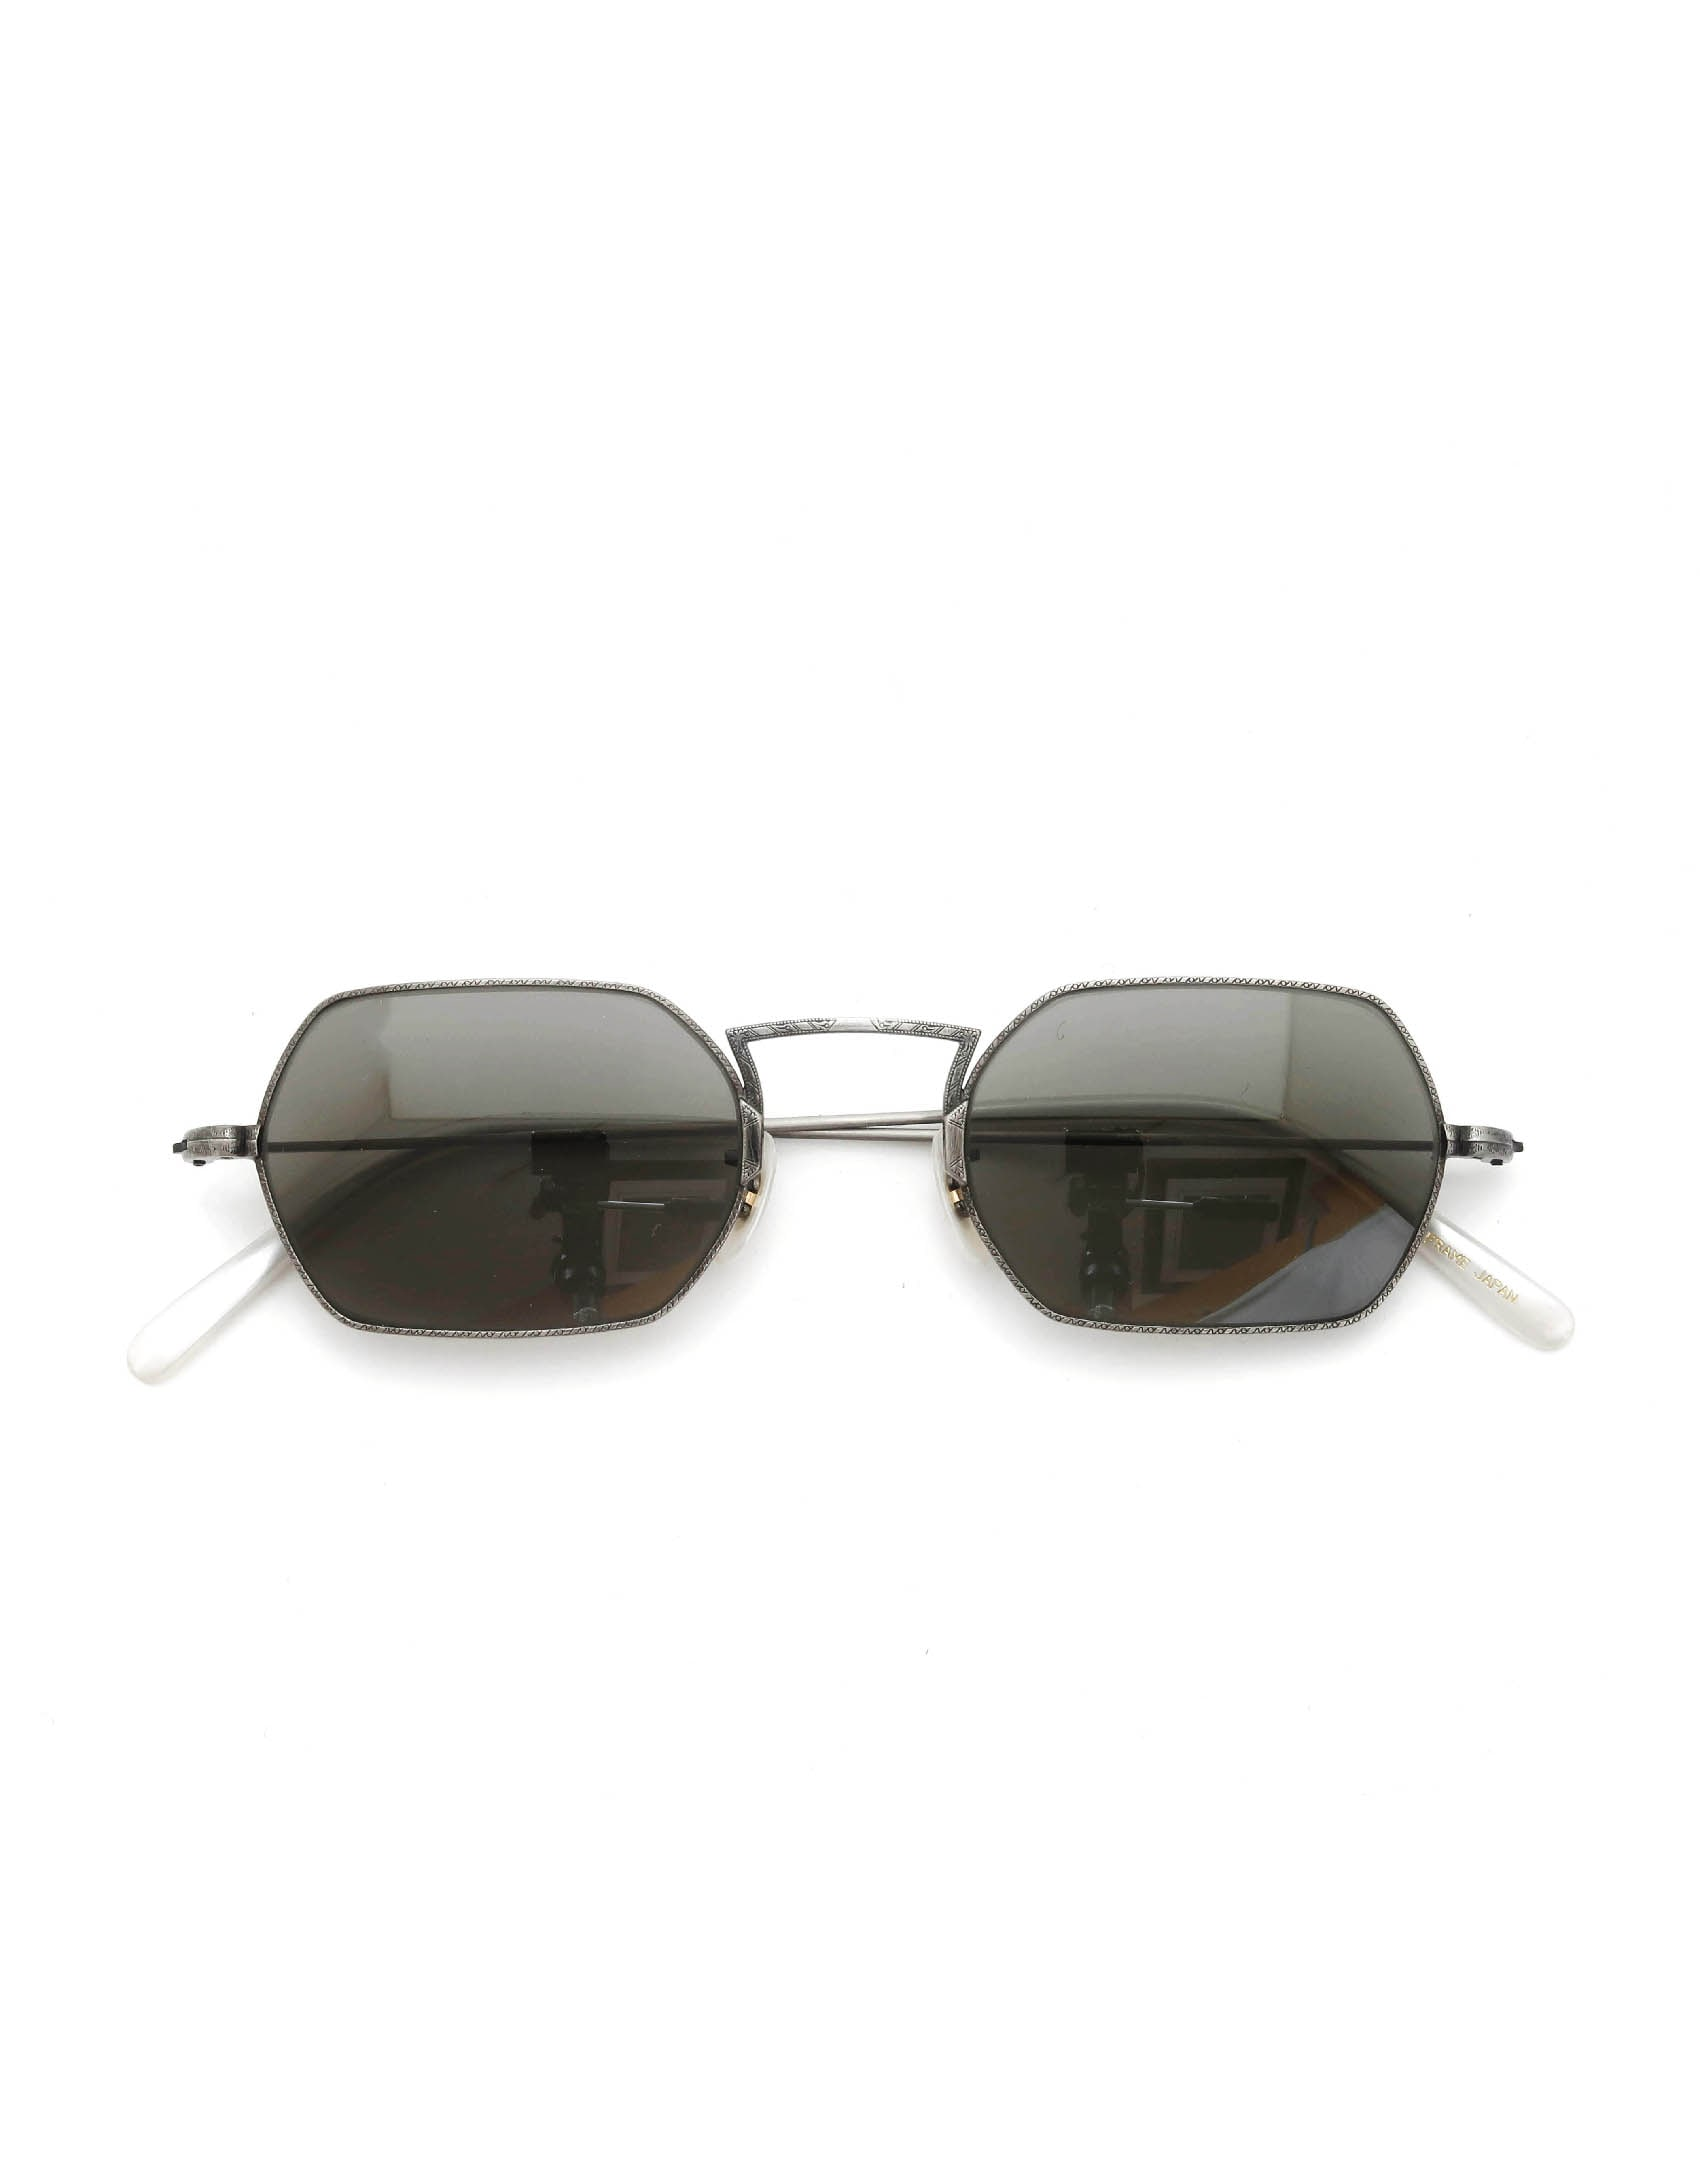 OLIVER PEOPLES archive PANE AS